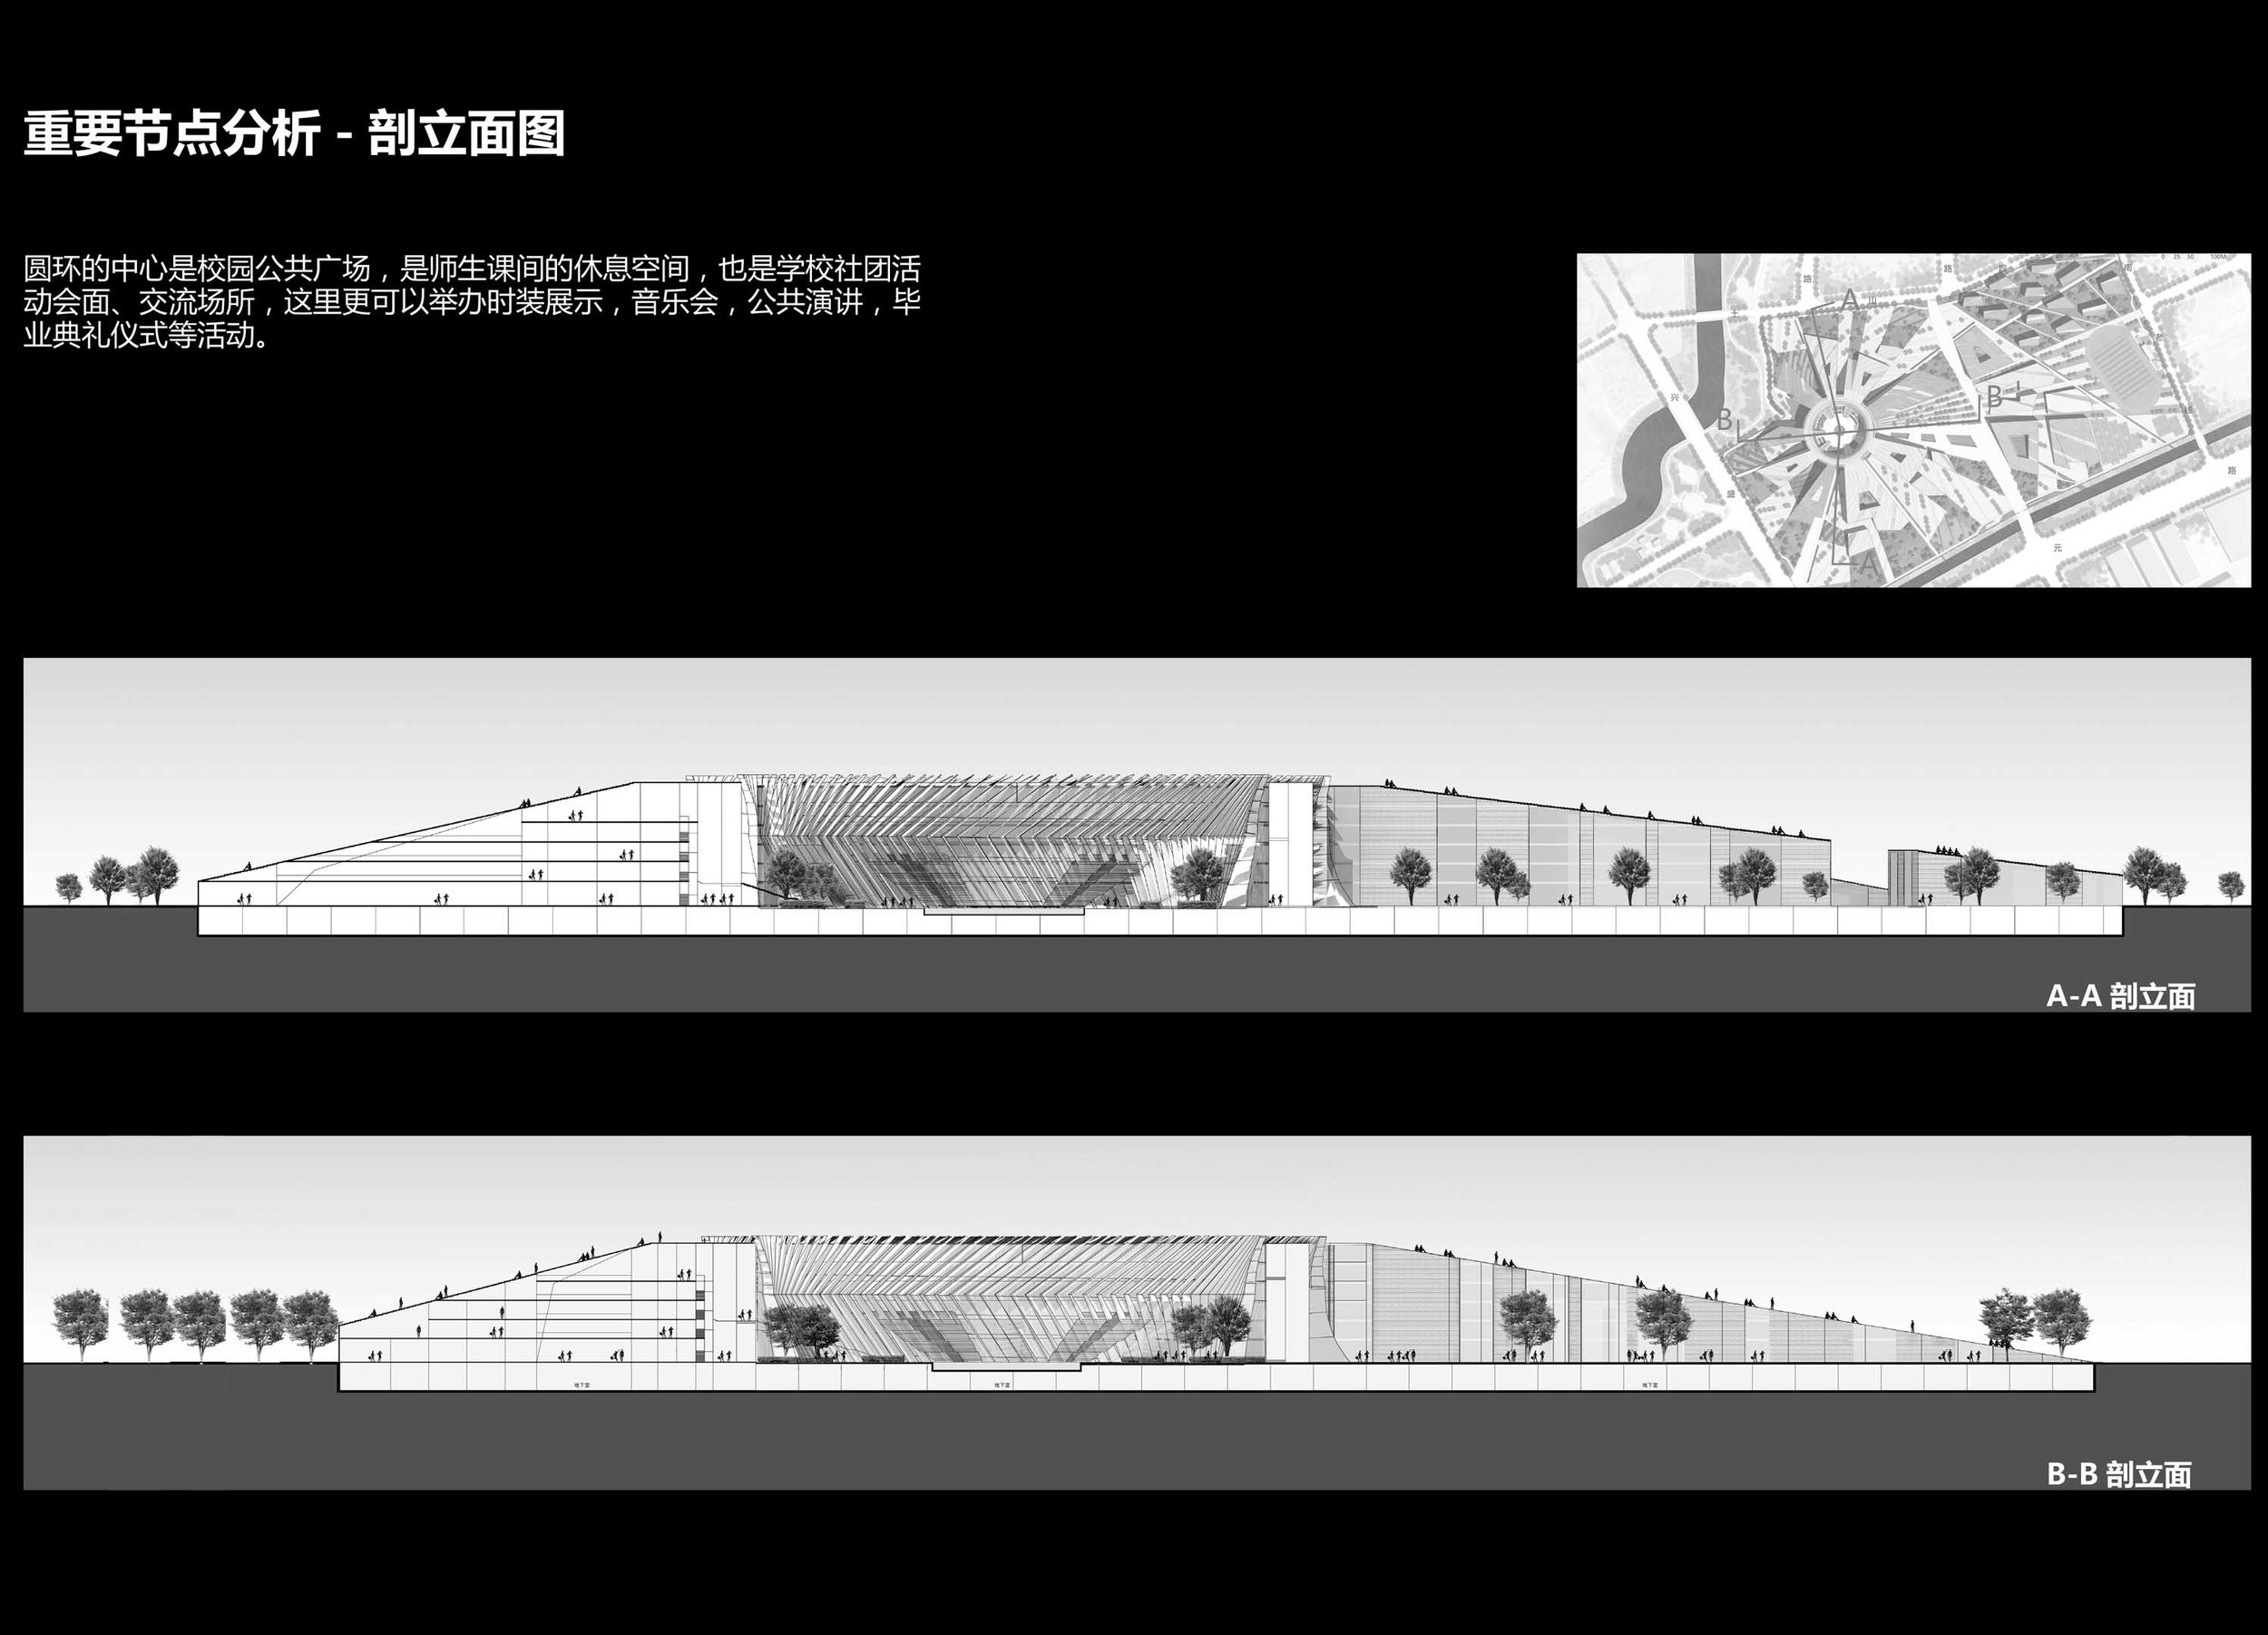 architecture and engineering office Berlin China competition